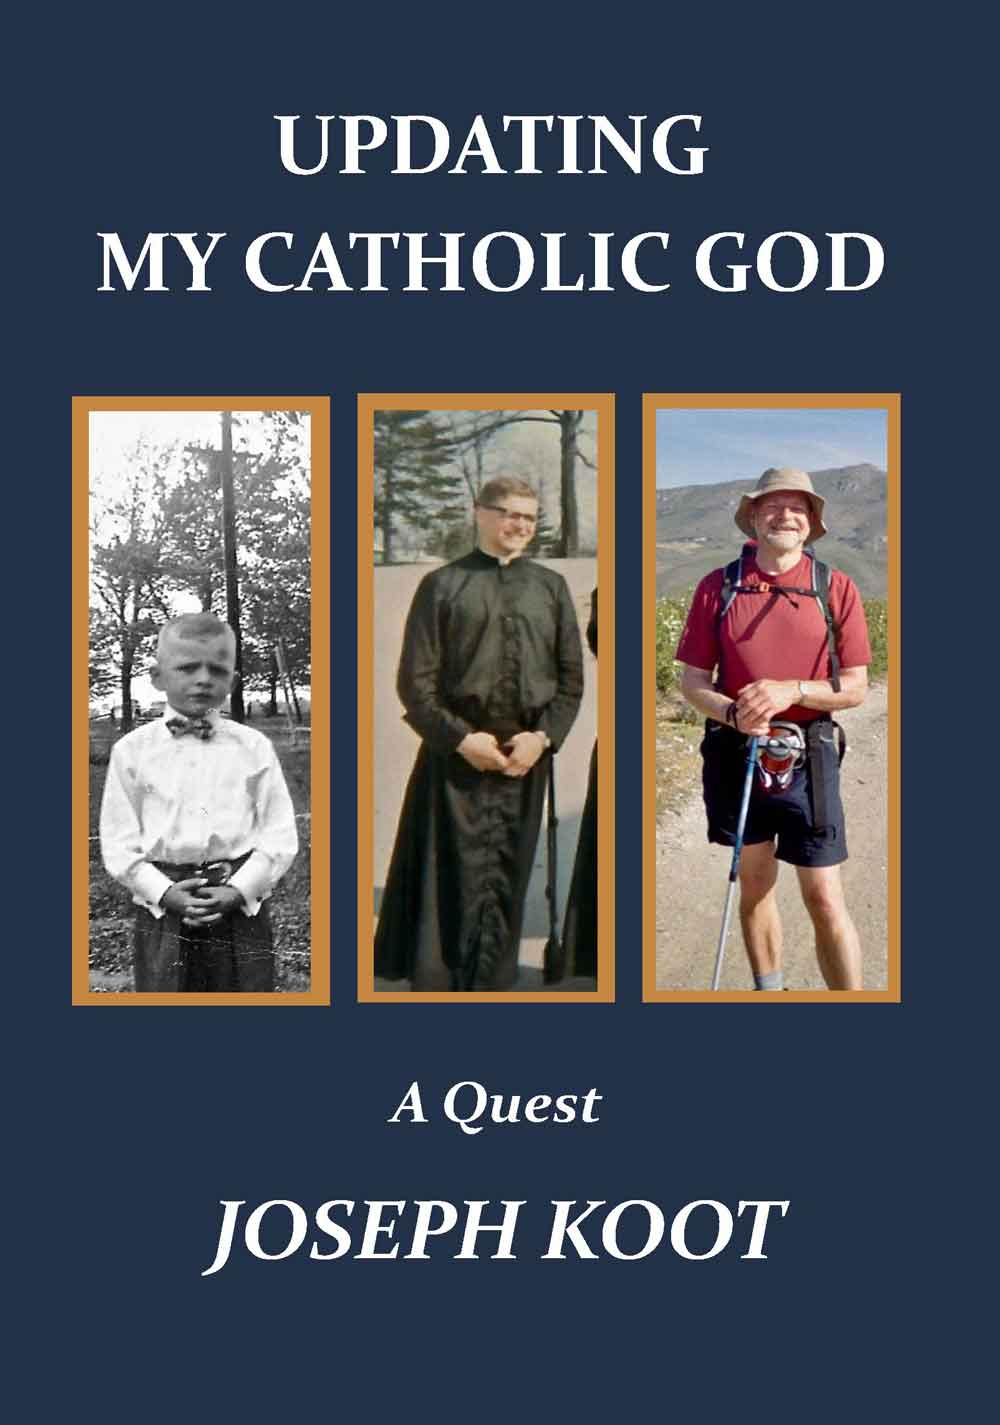 Updating My Catholic God: A Quest by Joseph Koot [book cover]